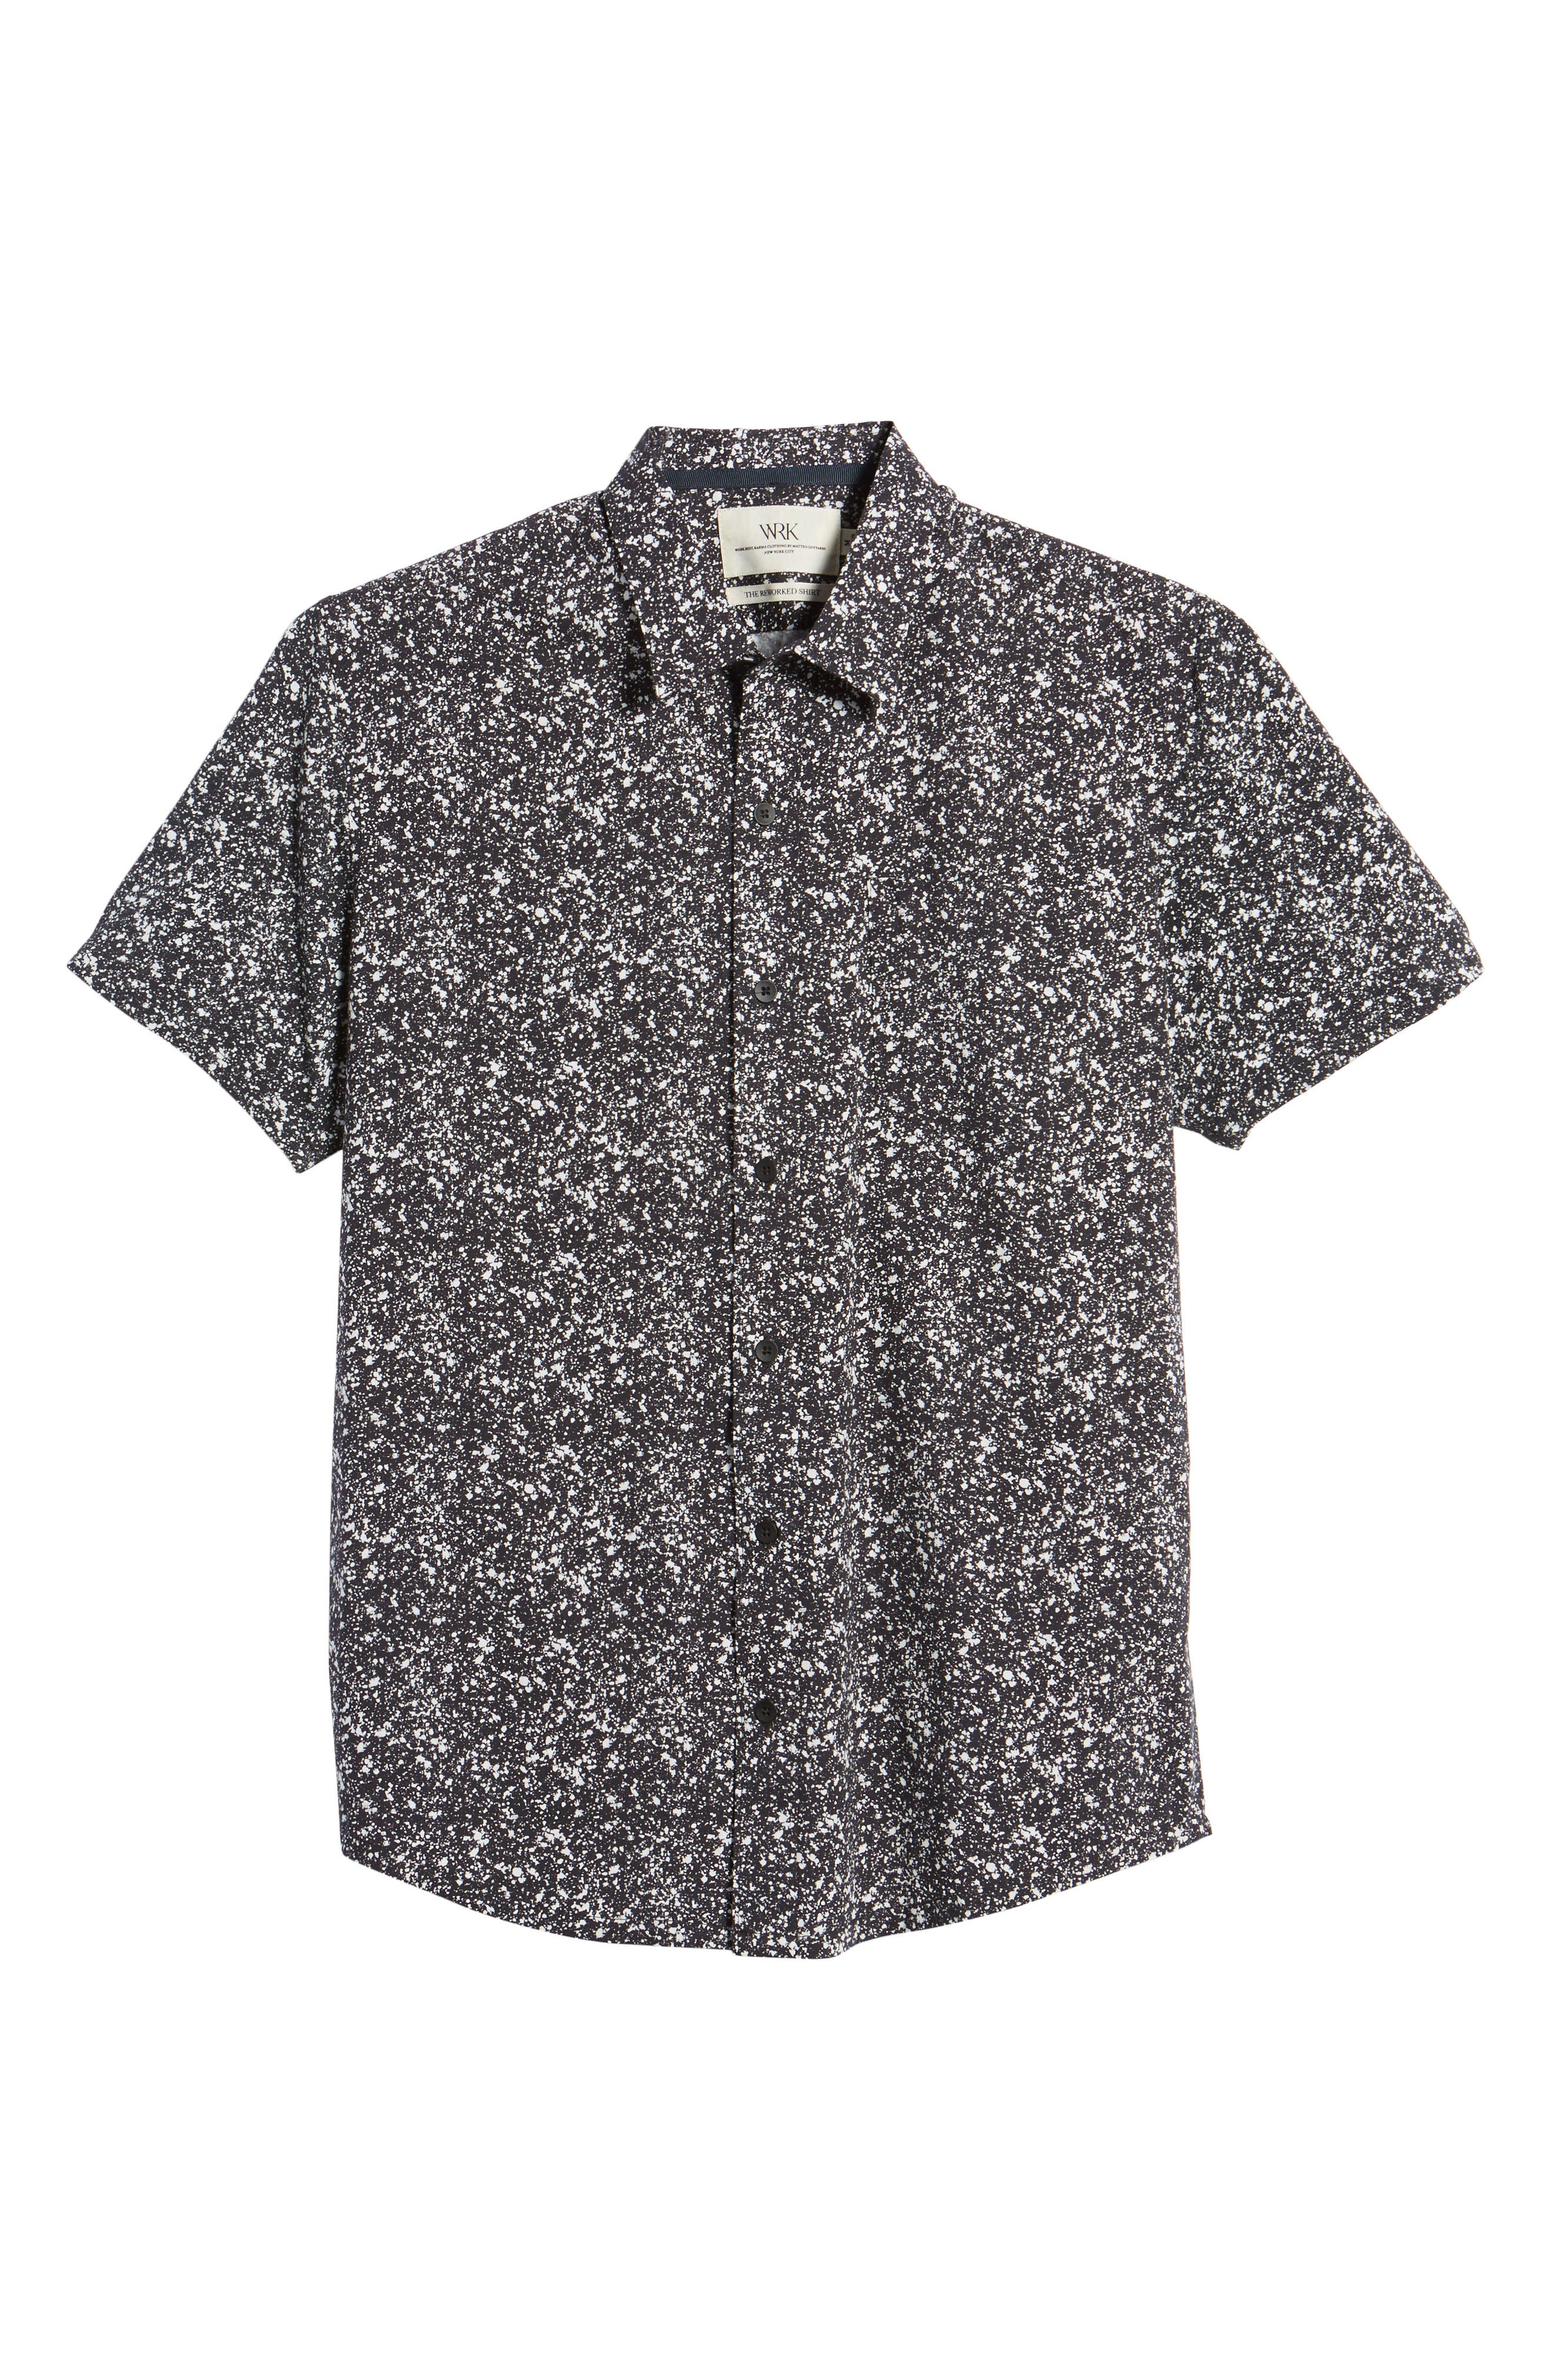 Slim Fit Splatter Sport Shirt,                             Alternate thumbnail 6, color,                             090